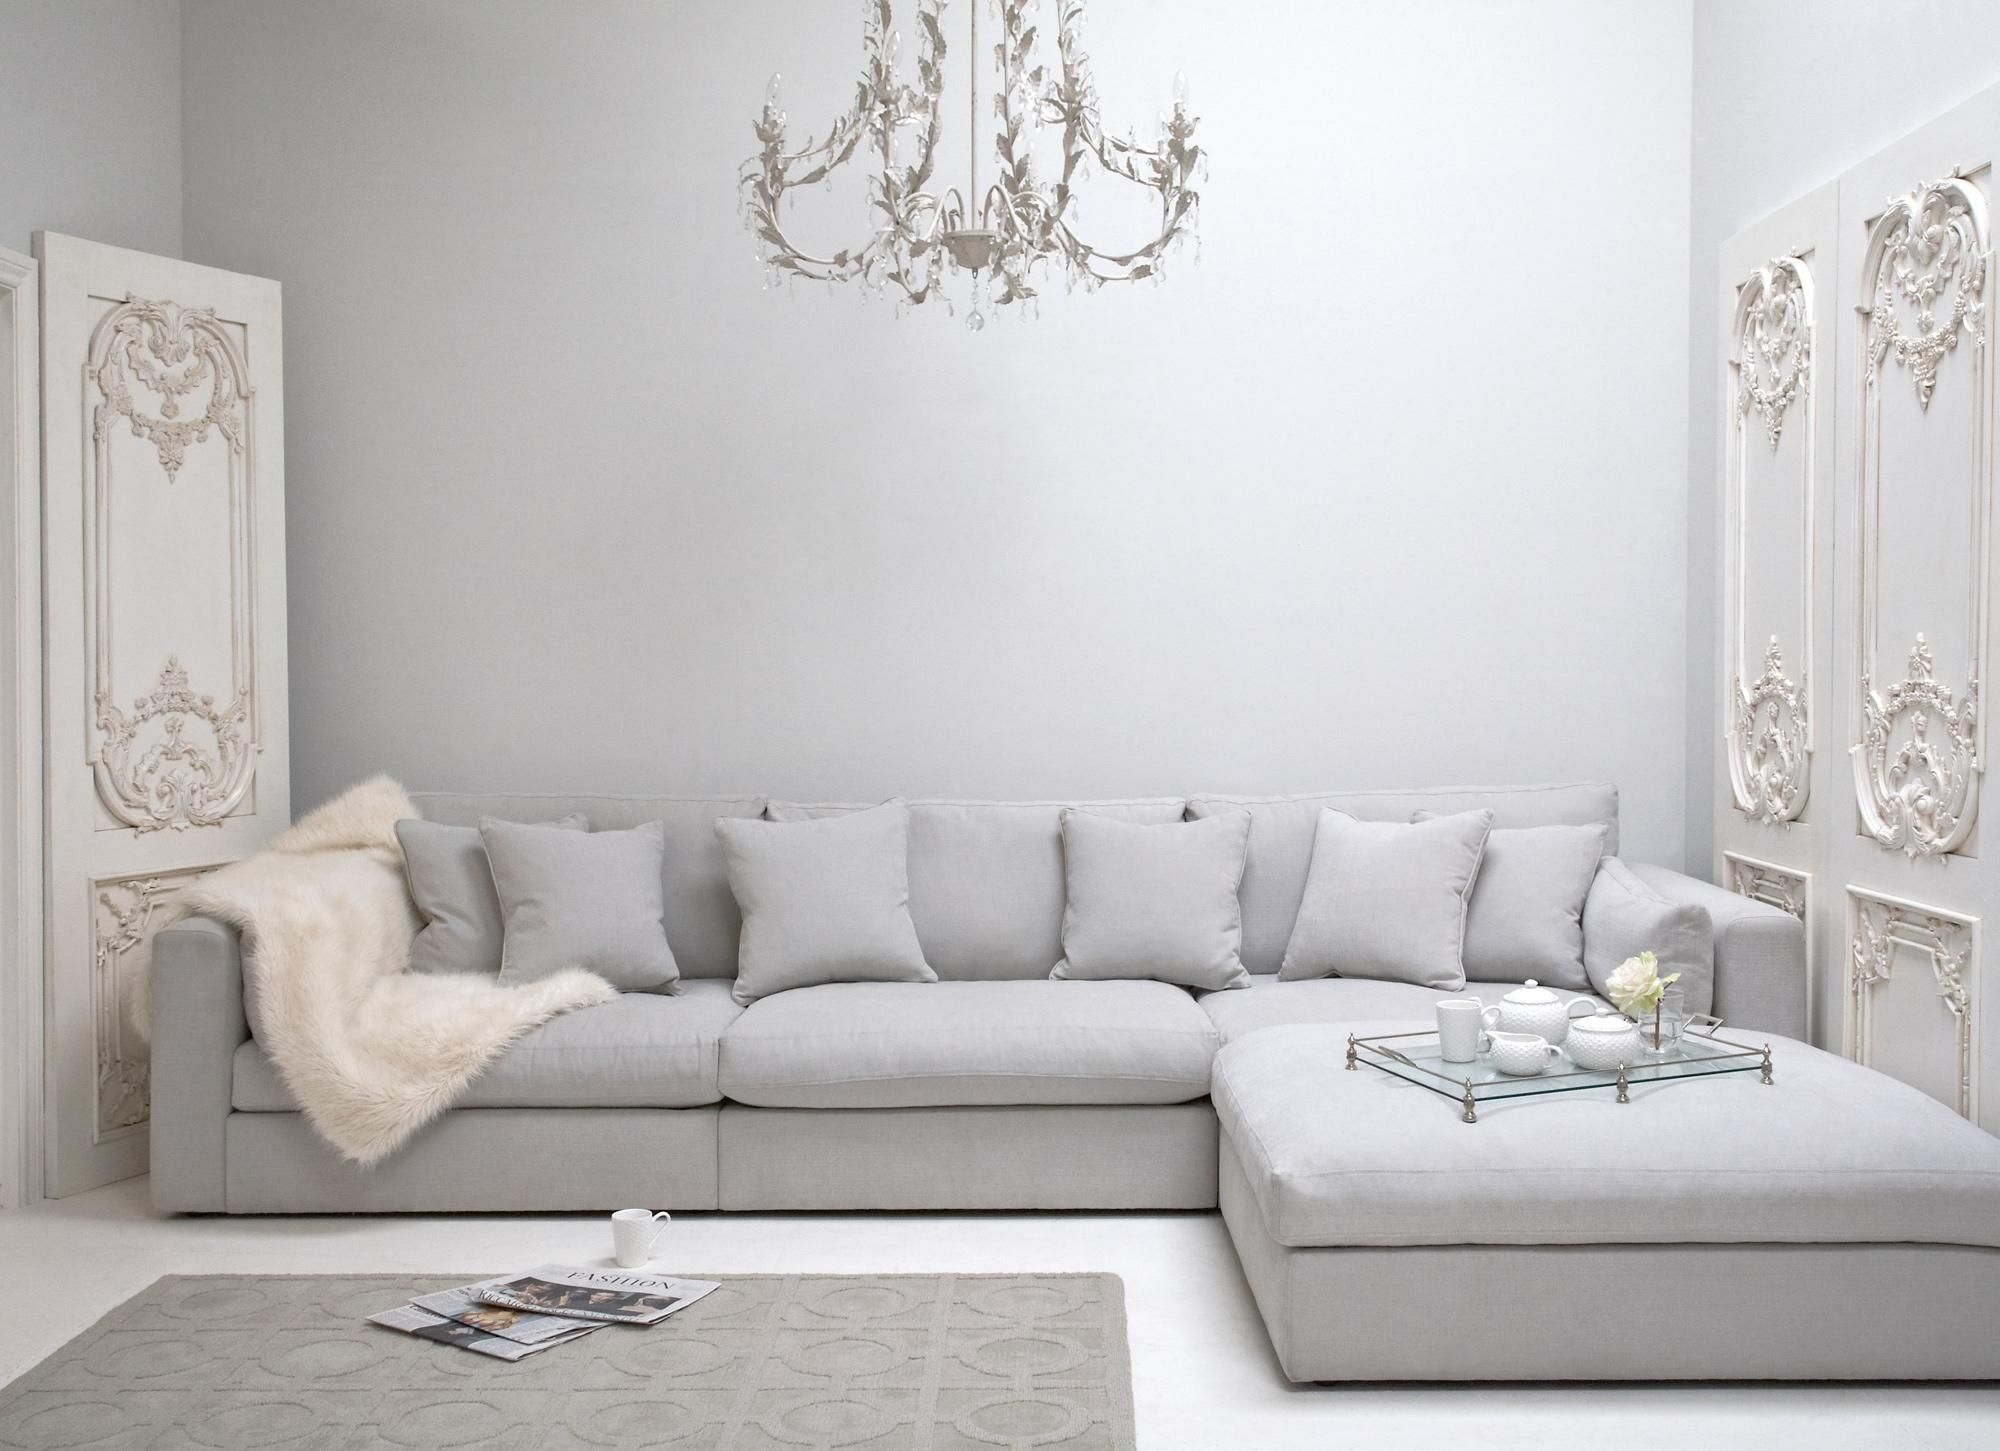 Lansdowne L Shape Sofa Lovely New Arrivals Furniture From Sweetpea Willow Living Room Sofa New Living Room Sofa Design